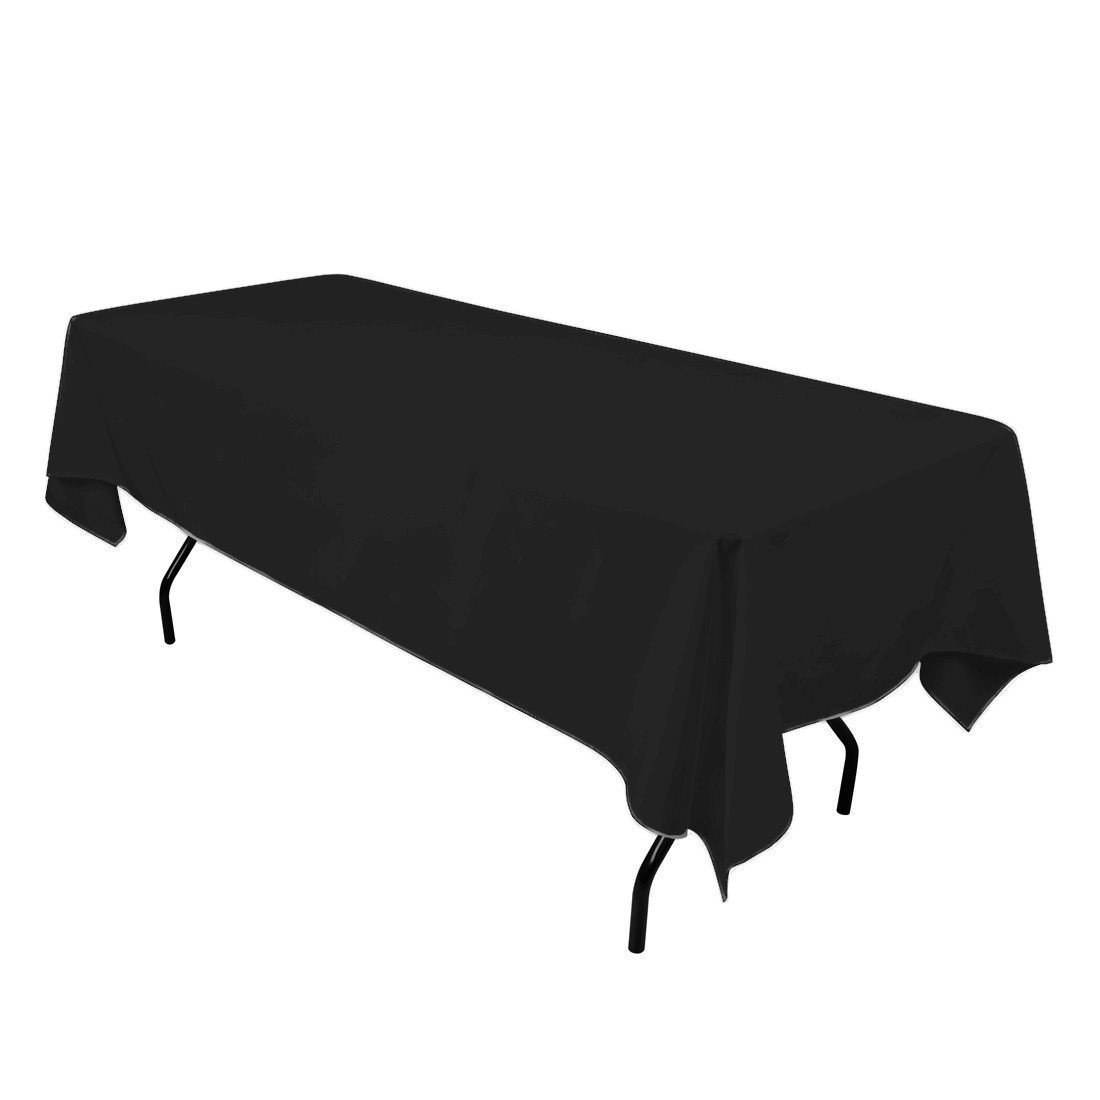 Gee Di Moda Rectangle Tablecloth - 60 x 102 Inch - Black Rectangular Table Cloth for 6 Foot Table in Washable Polyester - Great for Buffet Table, Parties, Holiday Dinner, Wedding & More